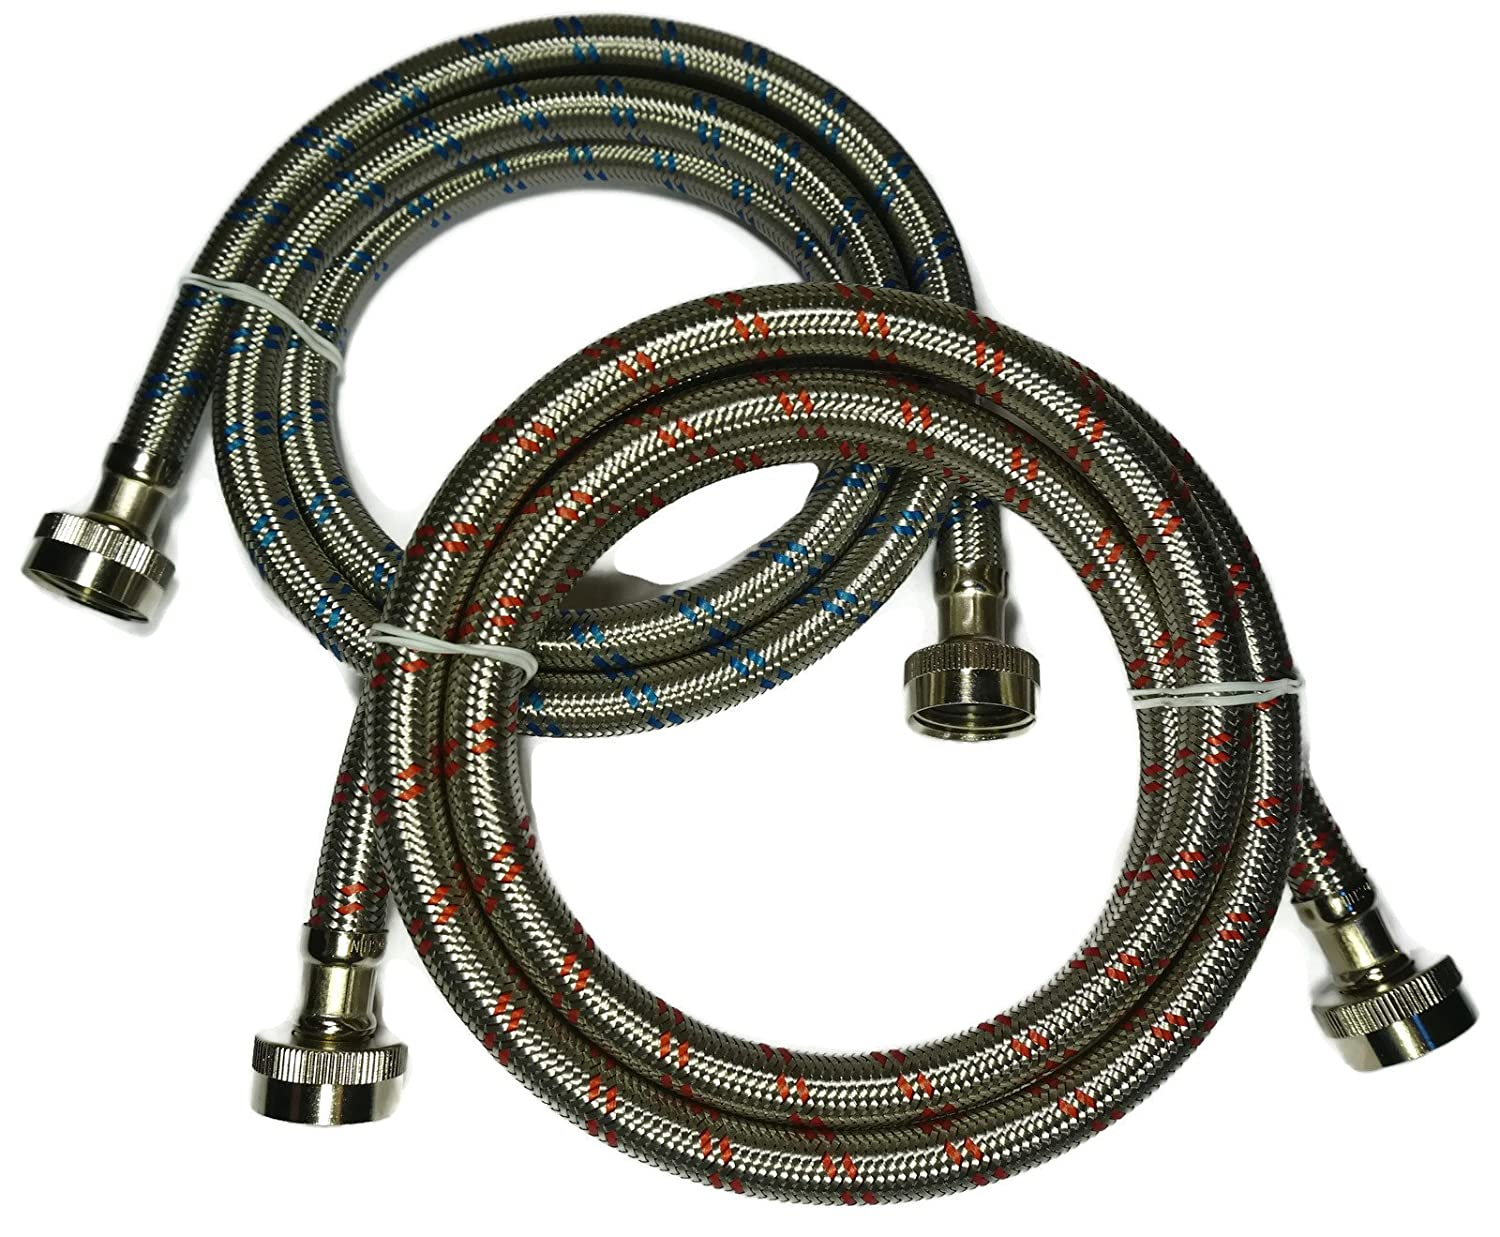 Premium Stainless Steel Washing Machine Hoses, 6 Ft Burst Proof